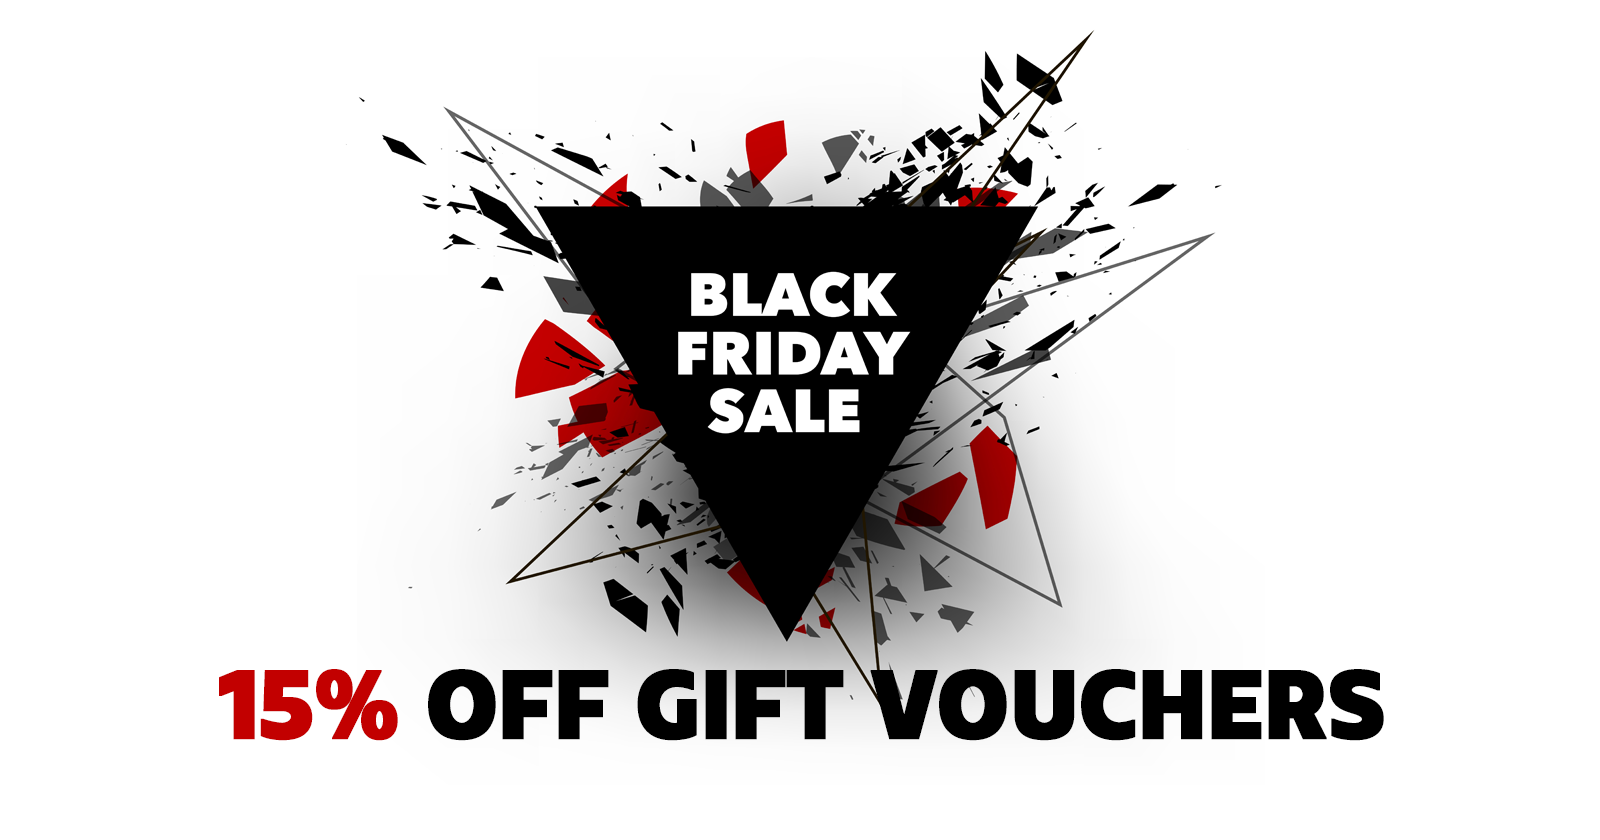 Black Friday 2017 – Gift Vouchers Sale